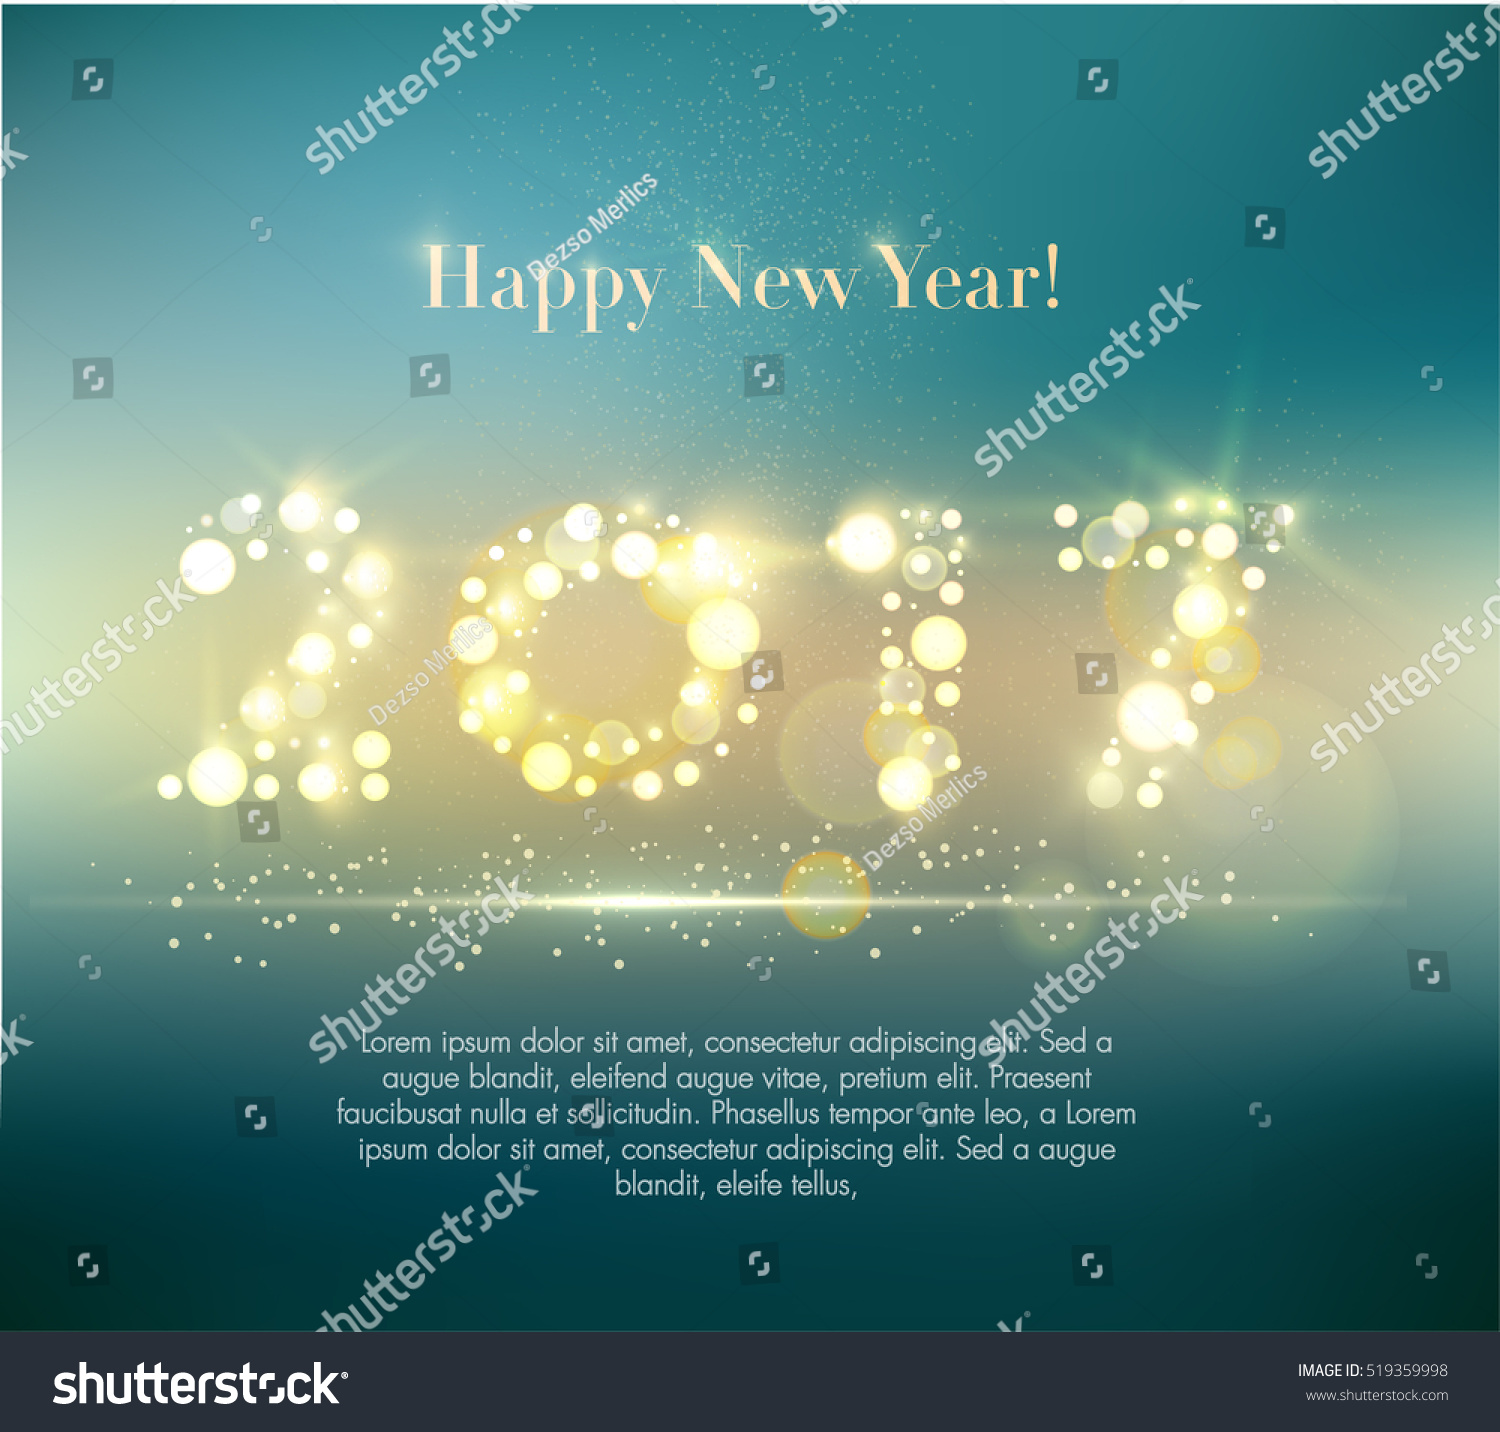 Vector 2017 Happy New Year background with sample text.